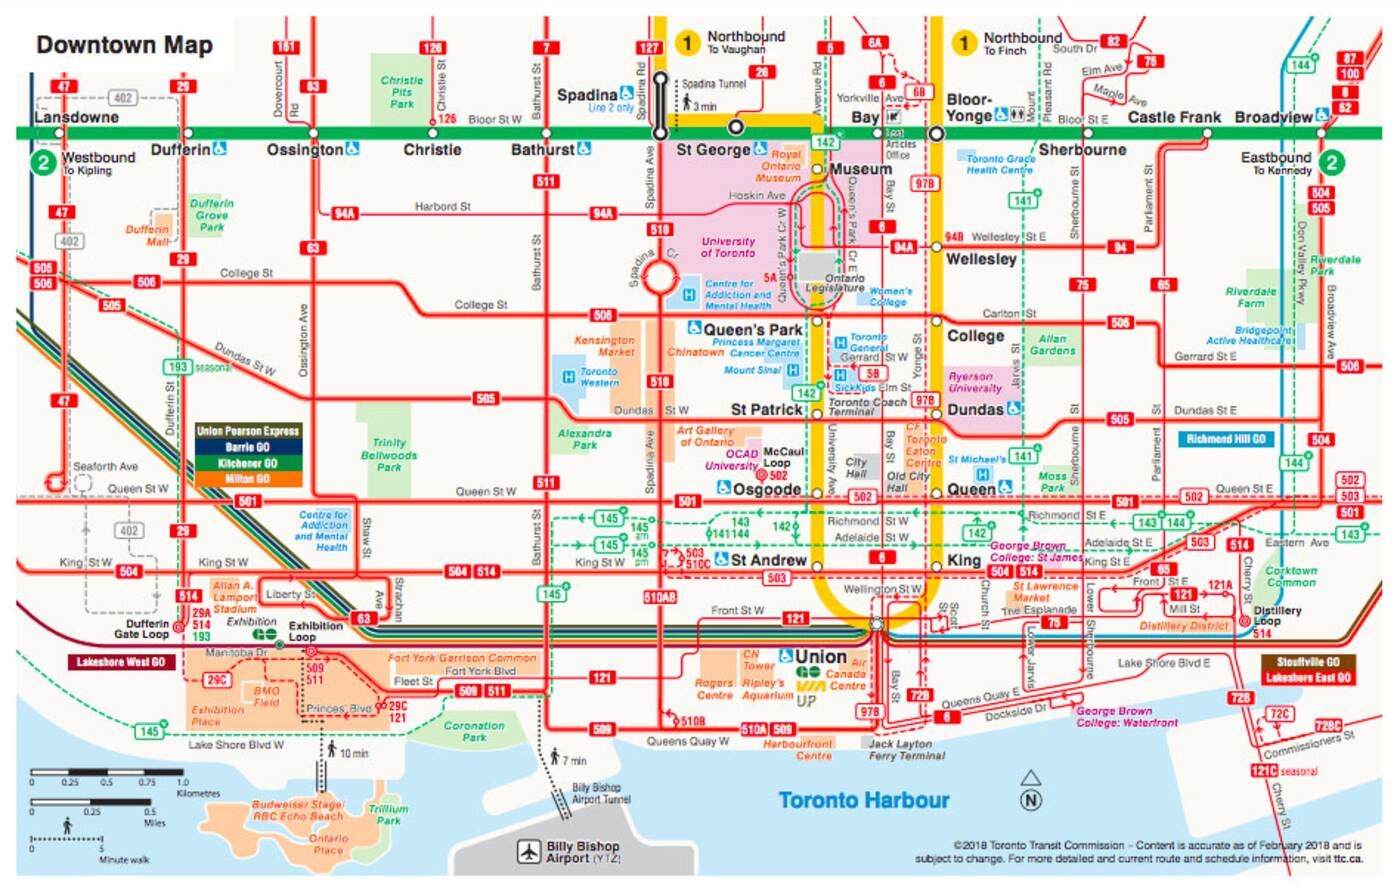 downtown toronto map